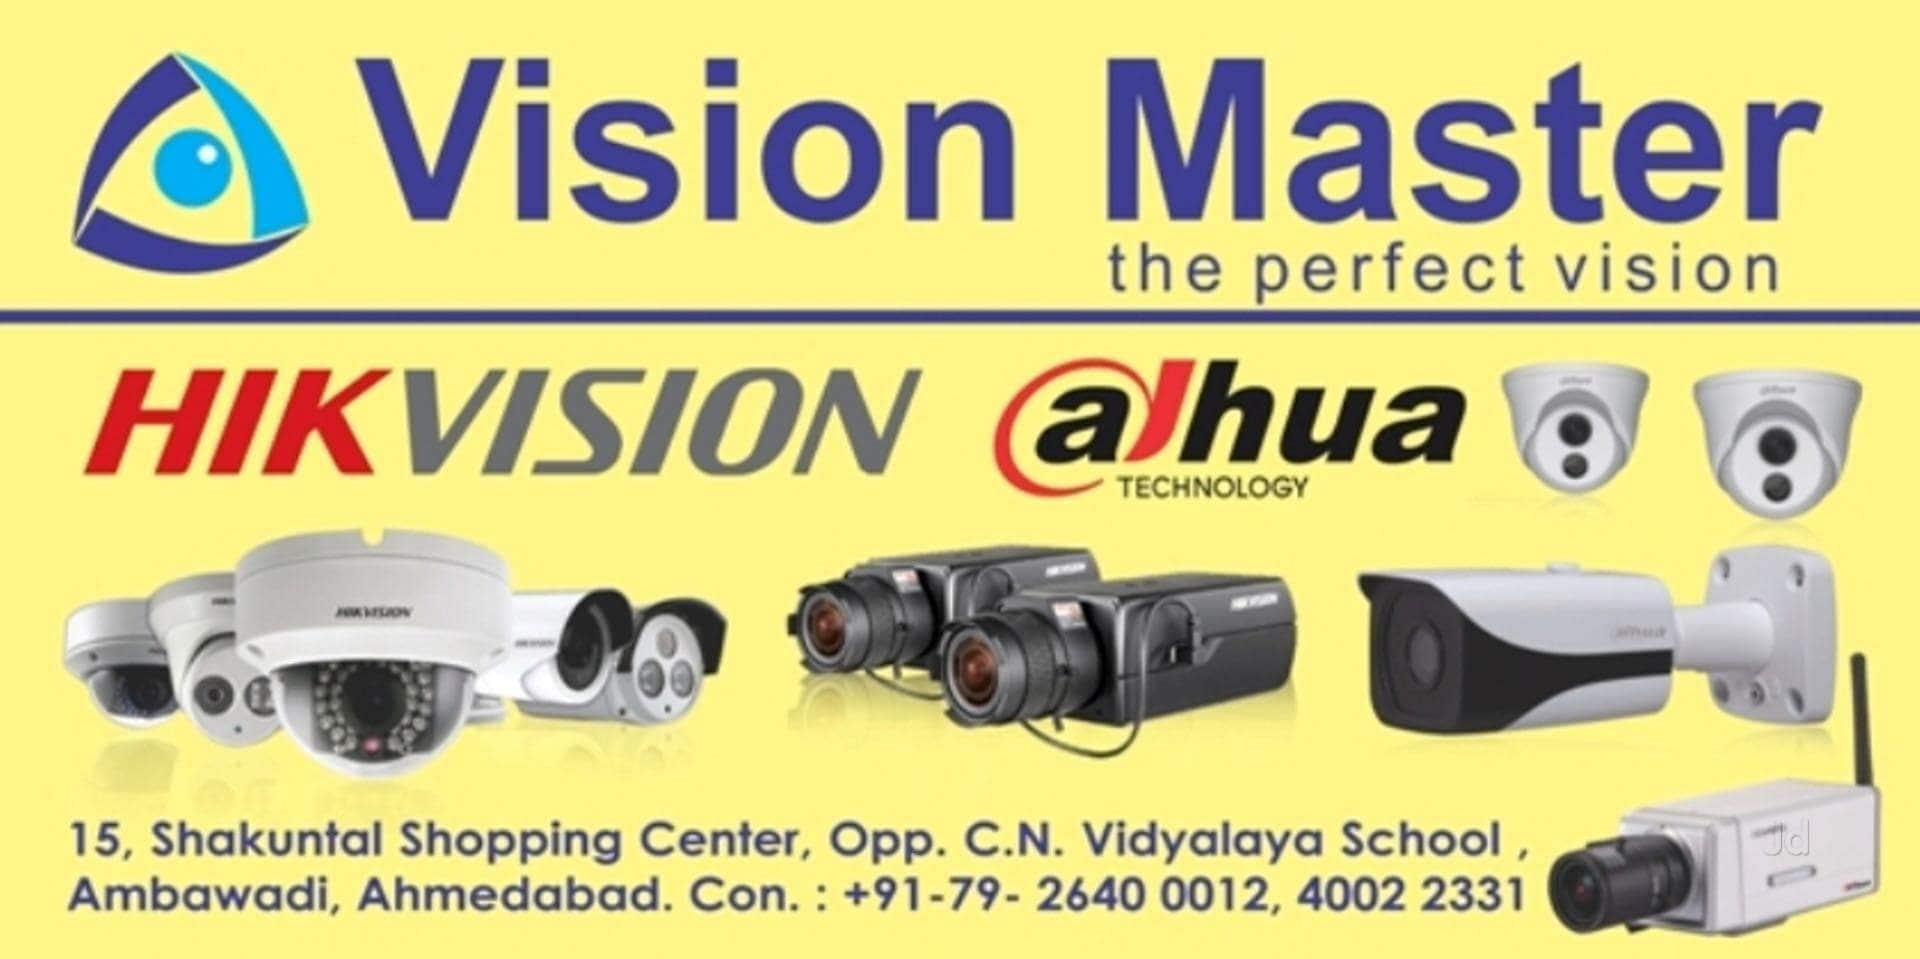 Top 100 CCTV Dealers in Ahmedabad - Best Surveillance CCTV Dealers